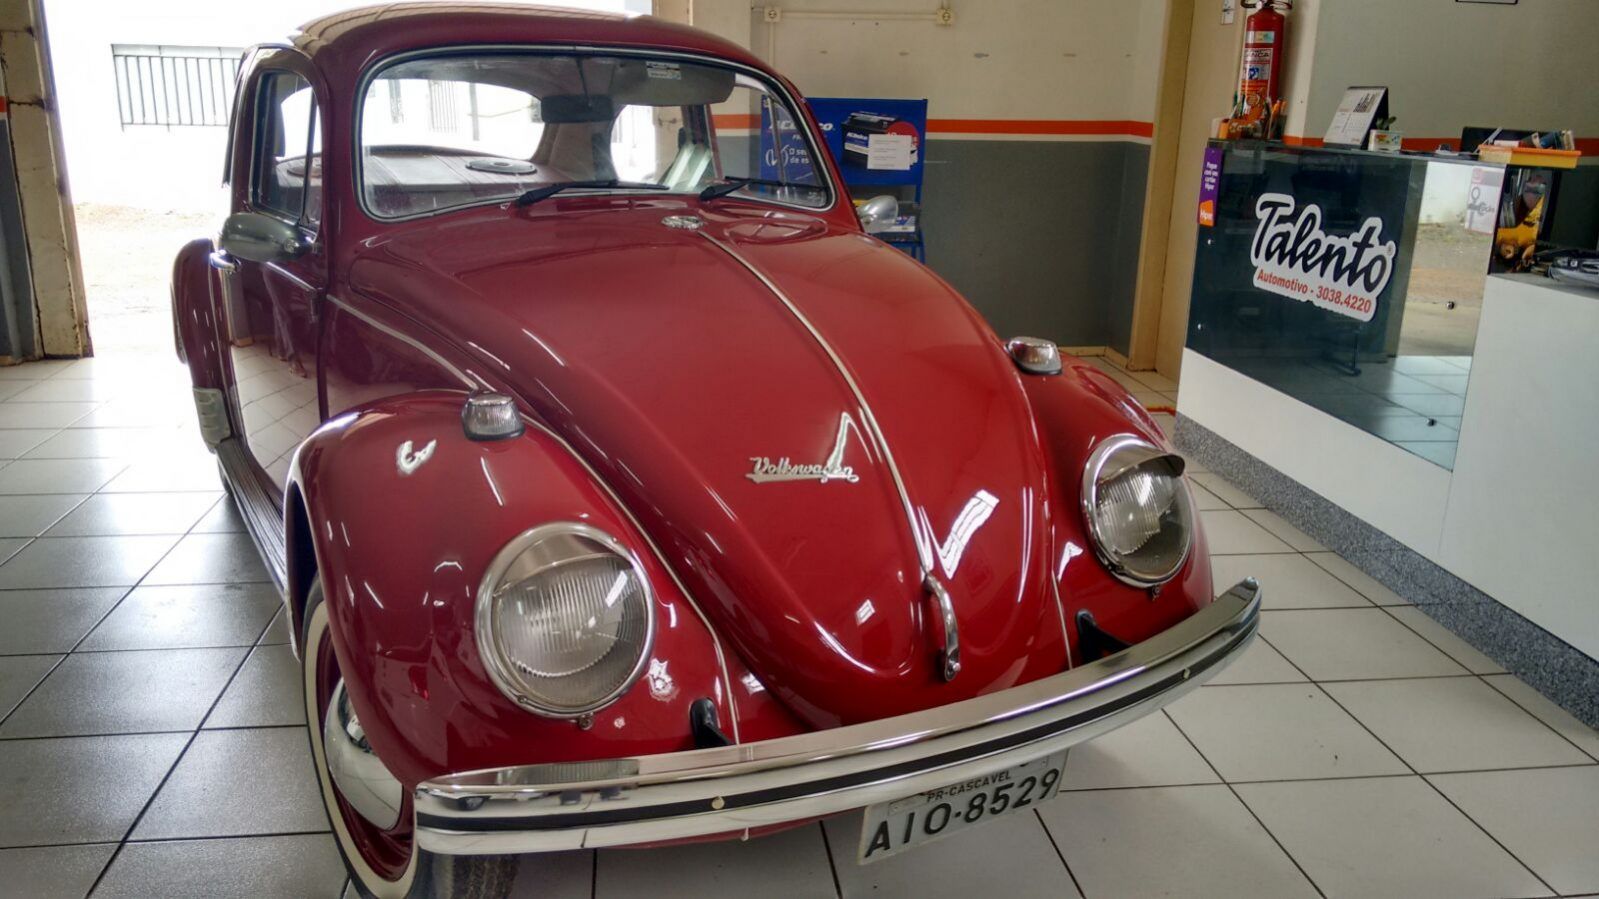 Talento-automotivo-cascavel-pr-vw-fusca